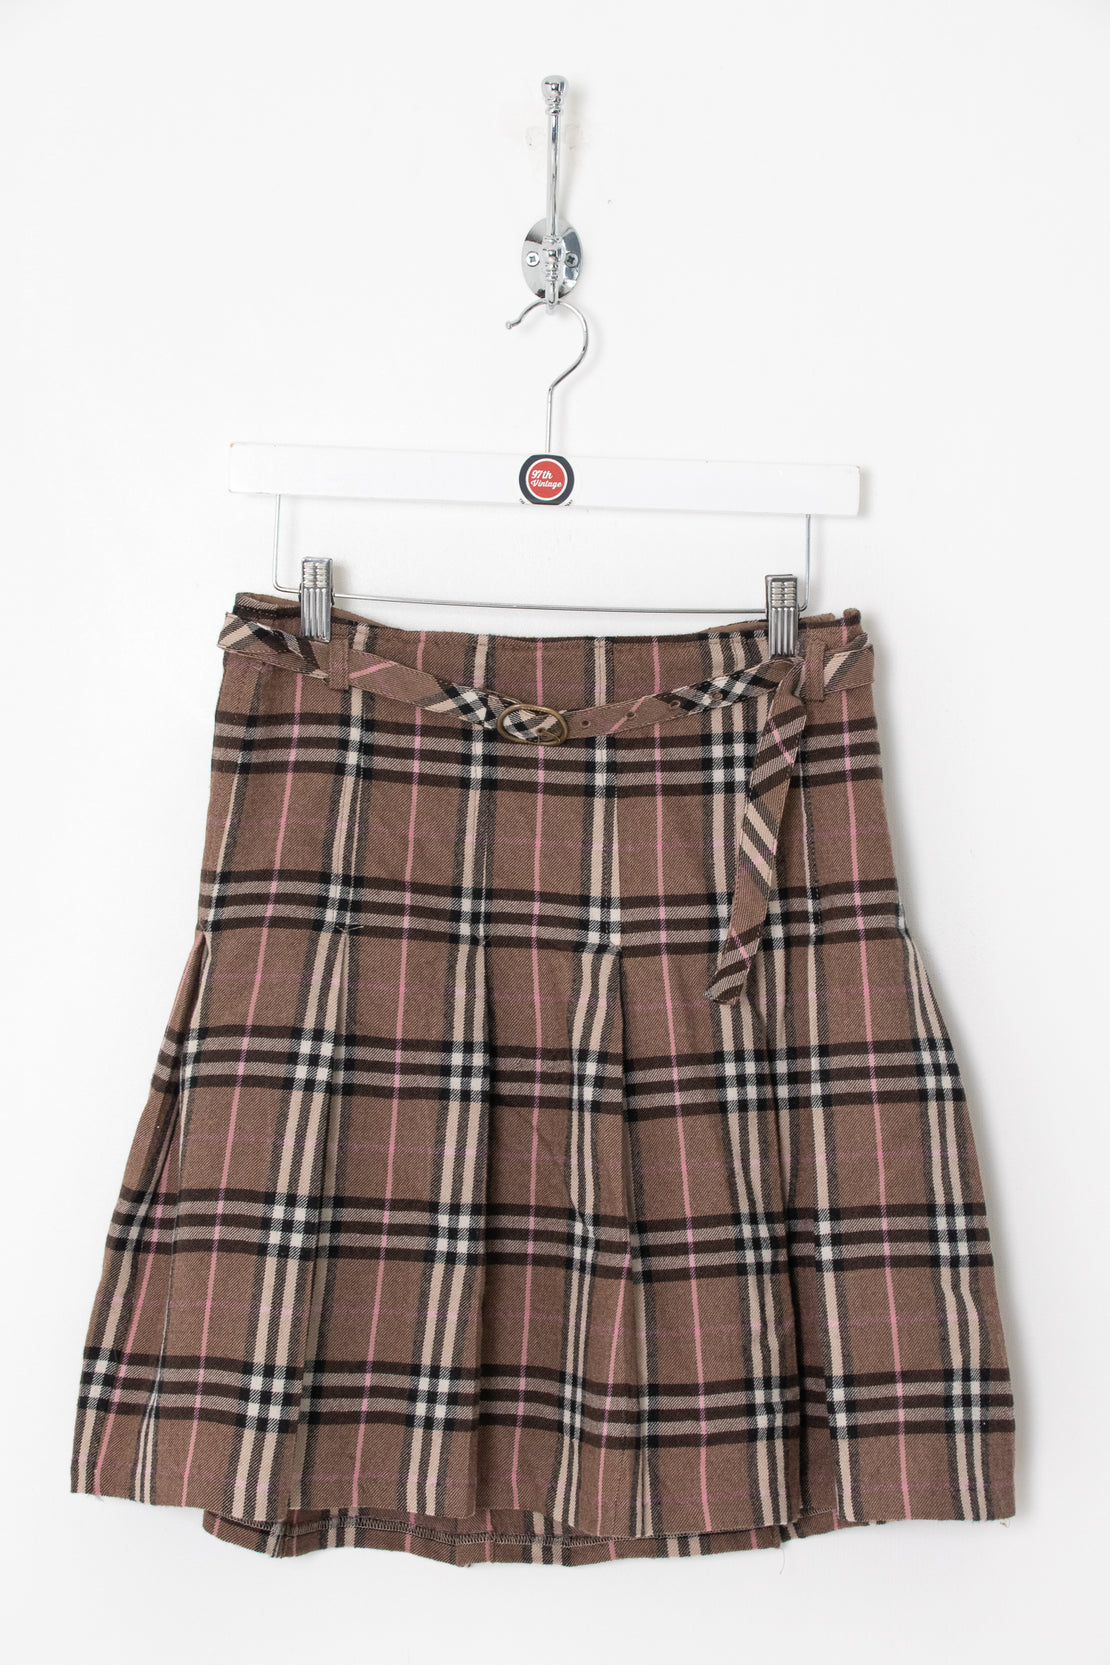 Women's Burberry Skirt (26)